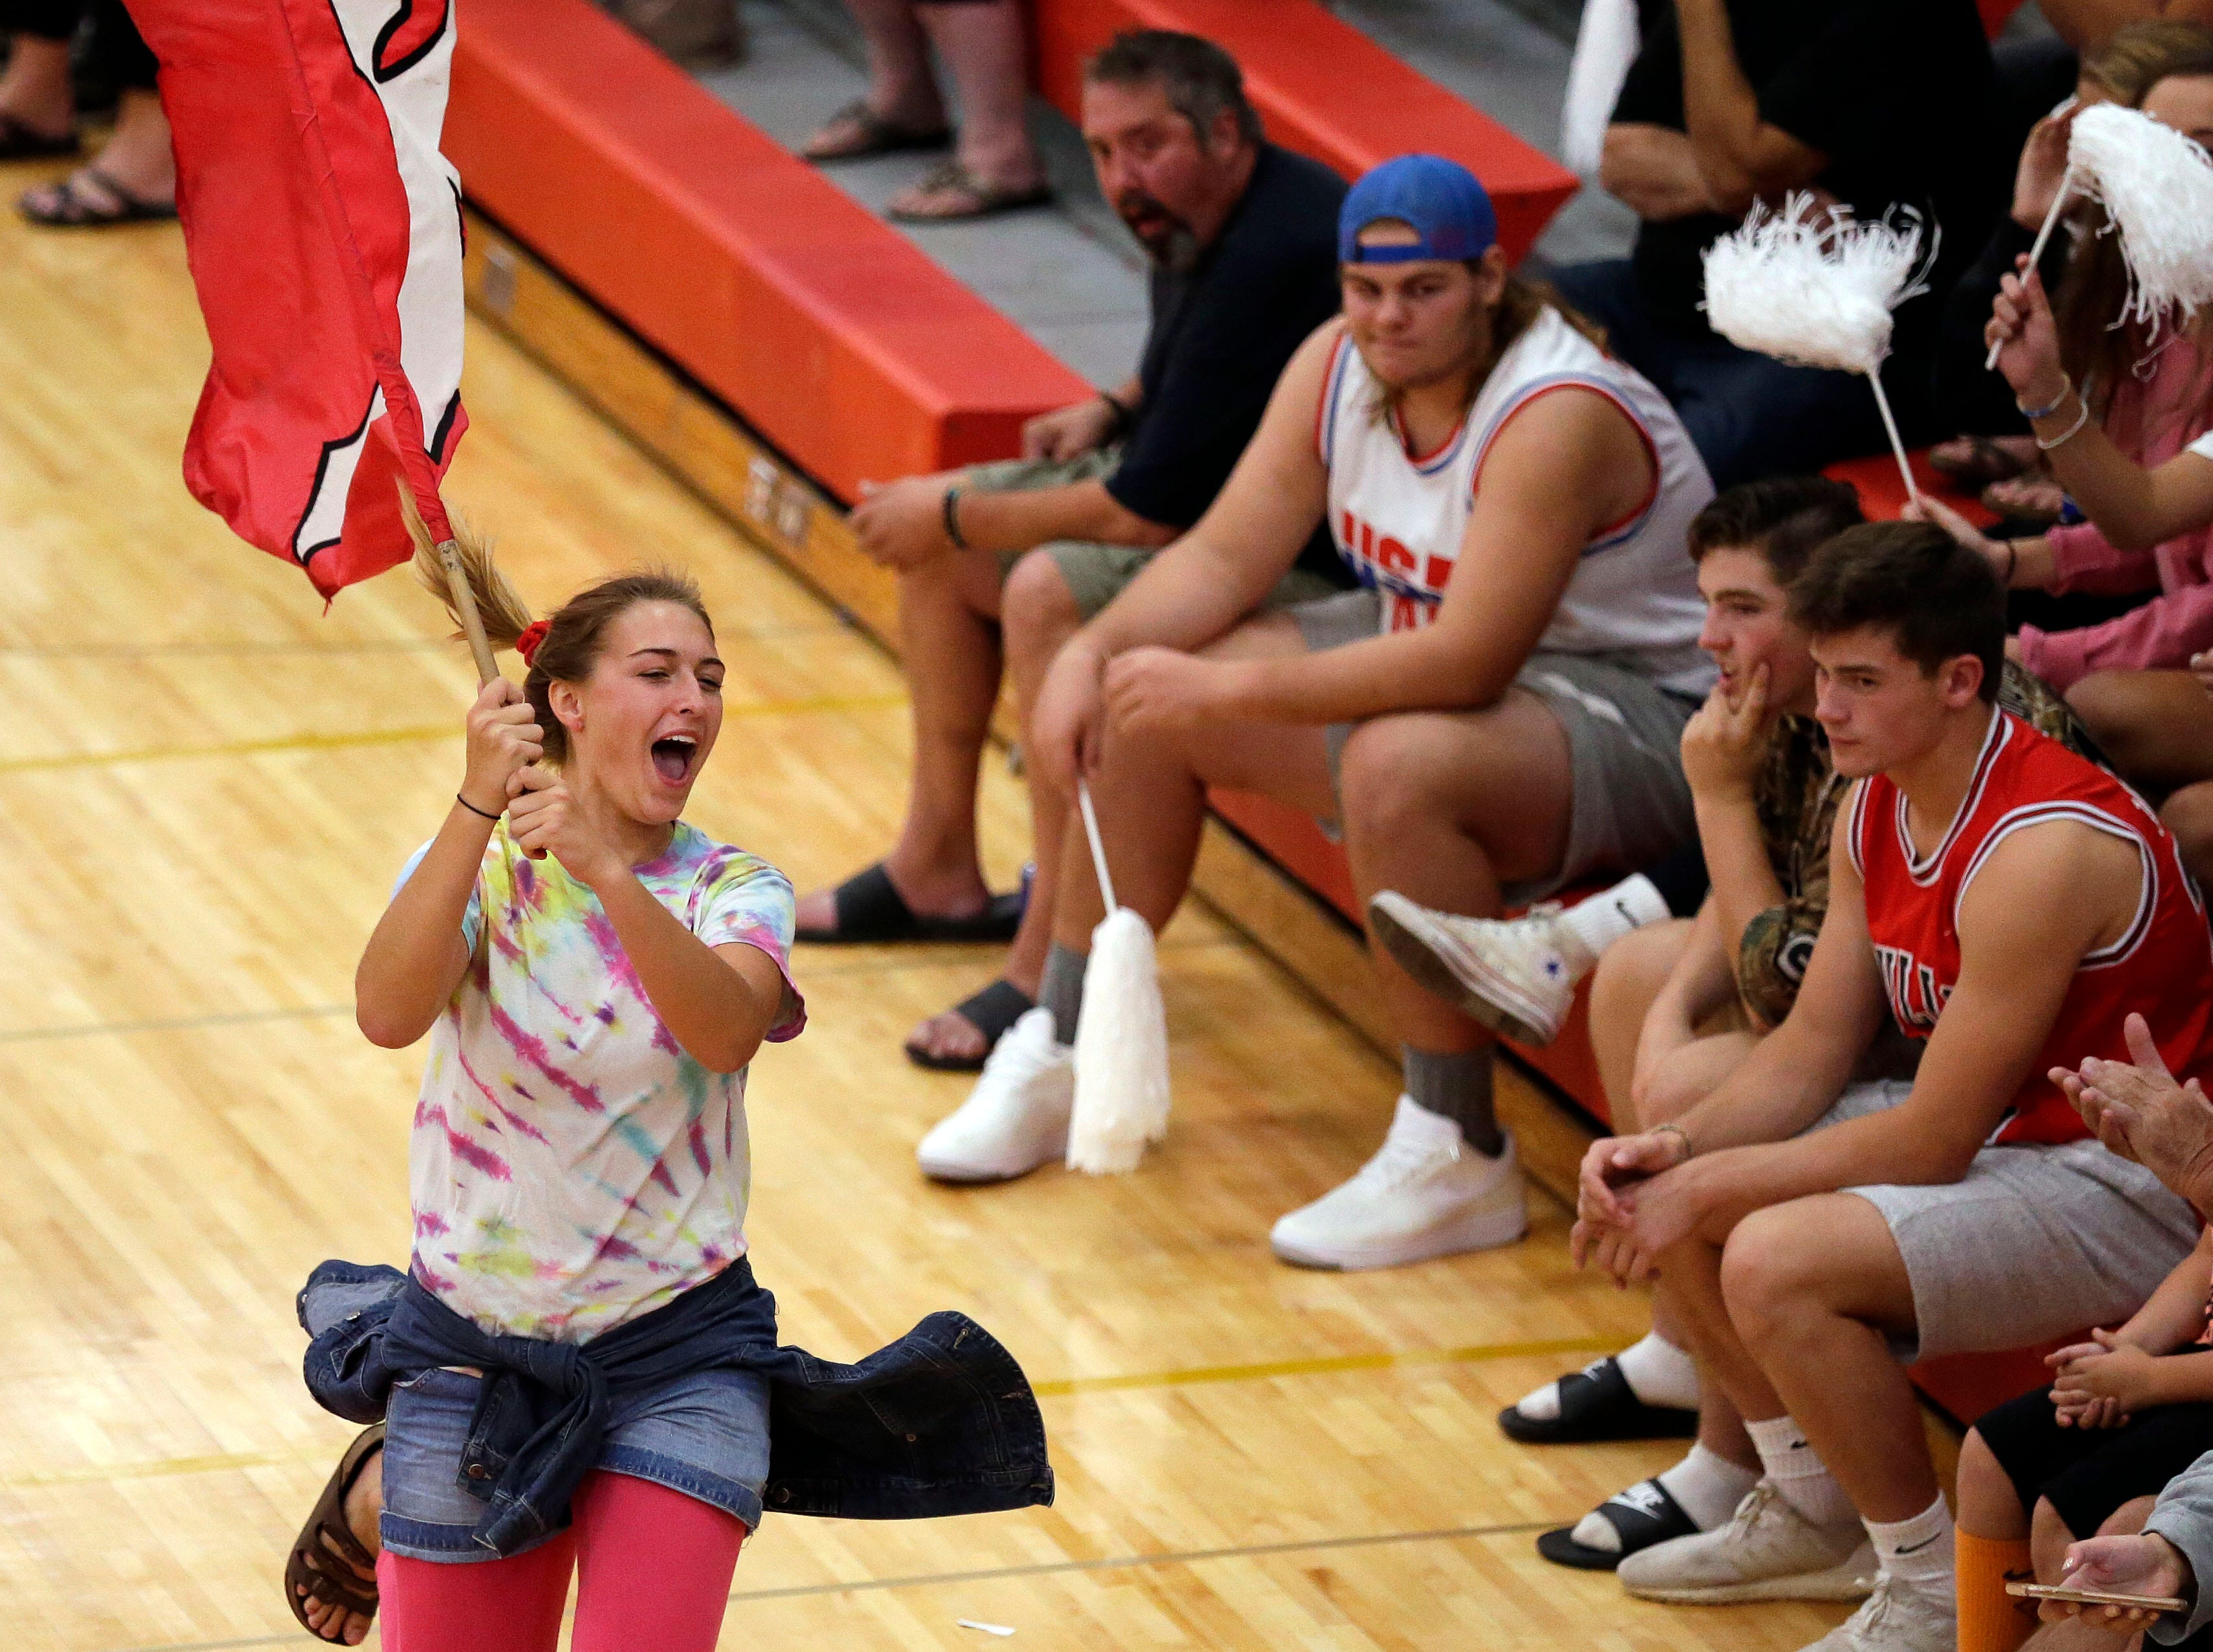 A Kimberly visits the Neenah cheering section during FVA girls volleyball Tuesday, September 11, 2018, at Kimberly High School in Kimberly, Wis.Ron Page/USA TODAY NETWORK-Wisconsin